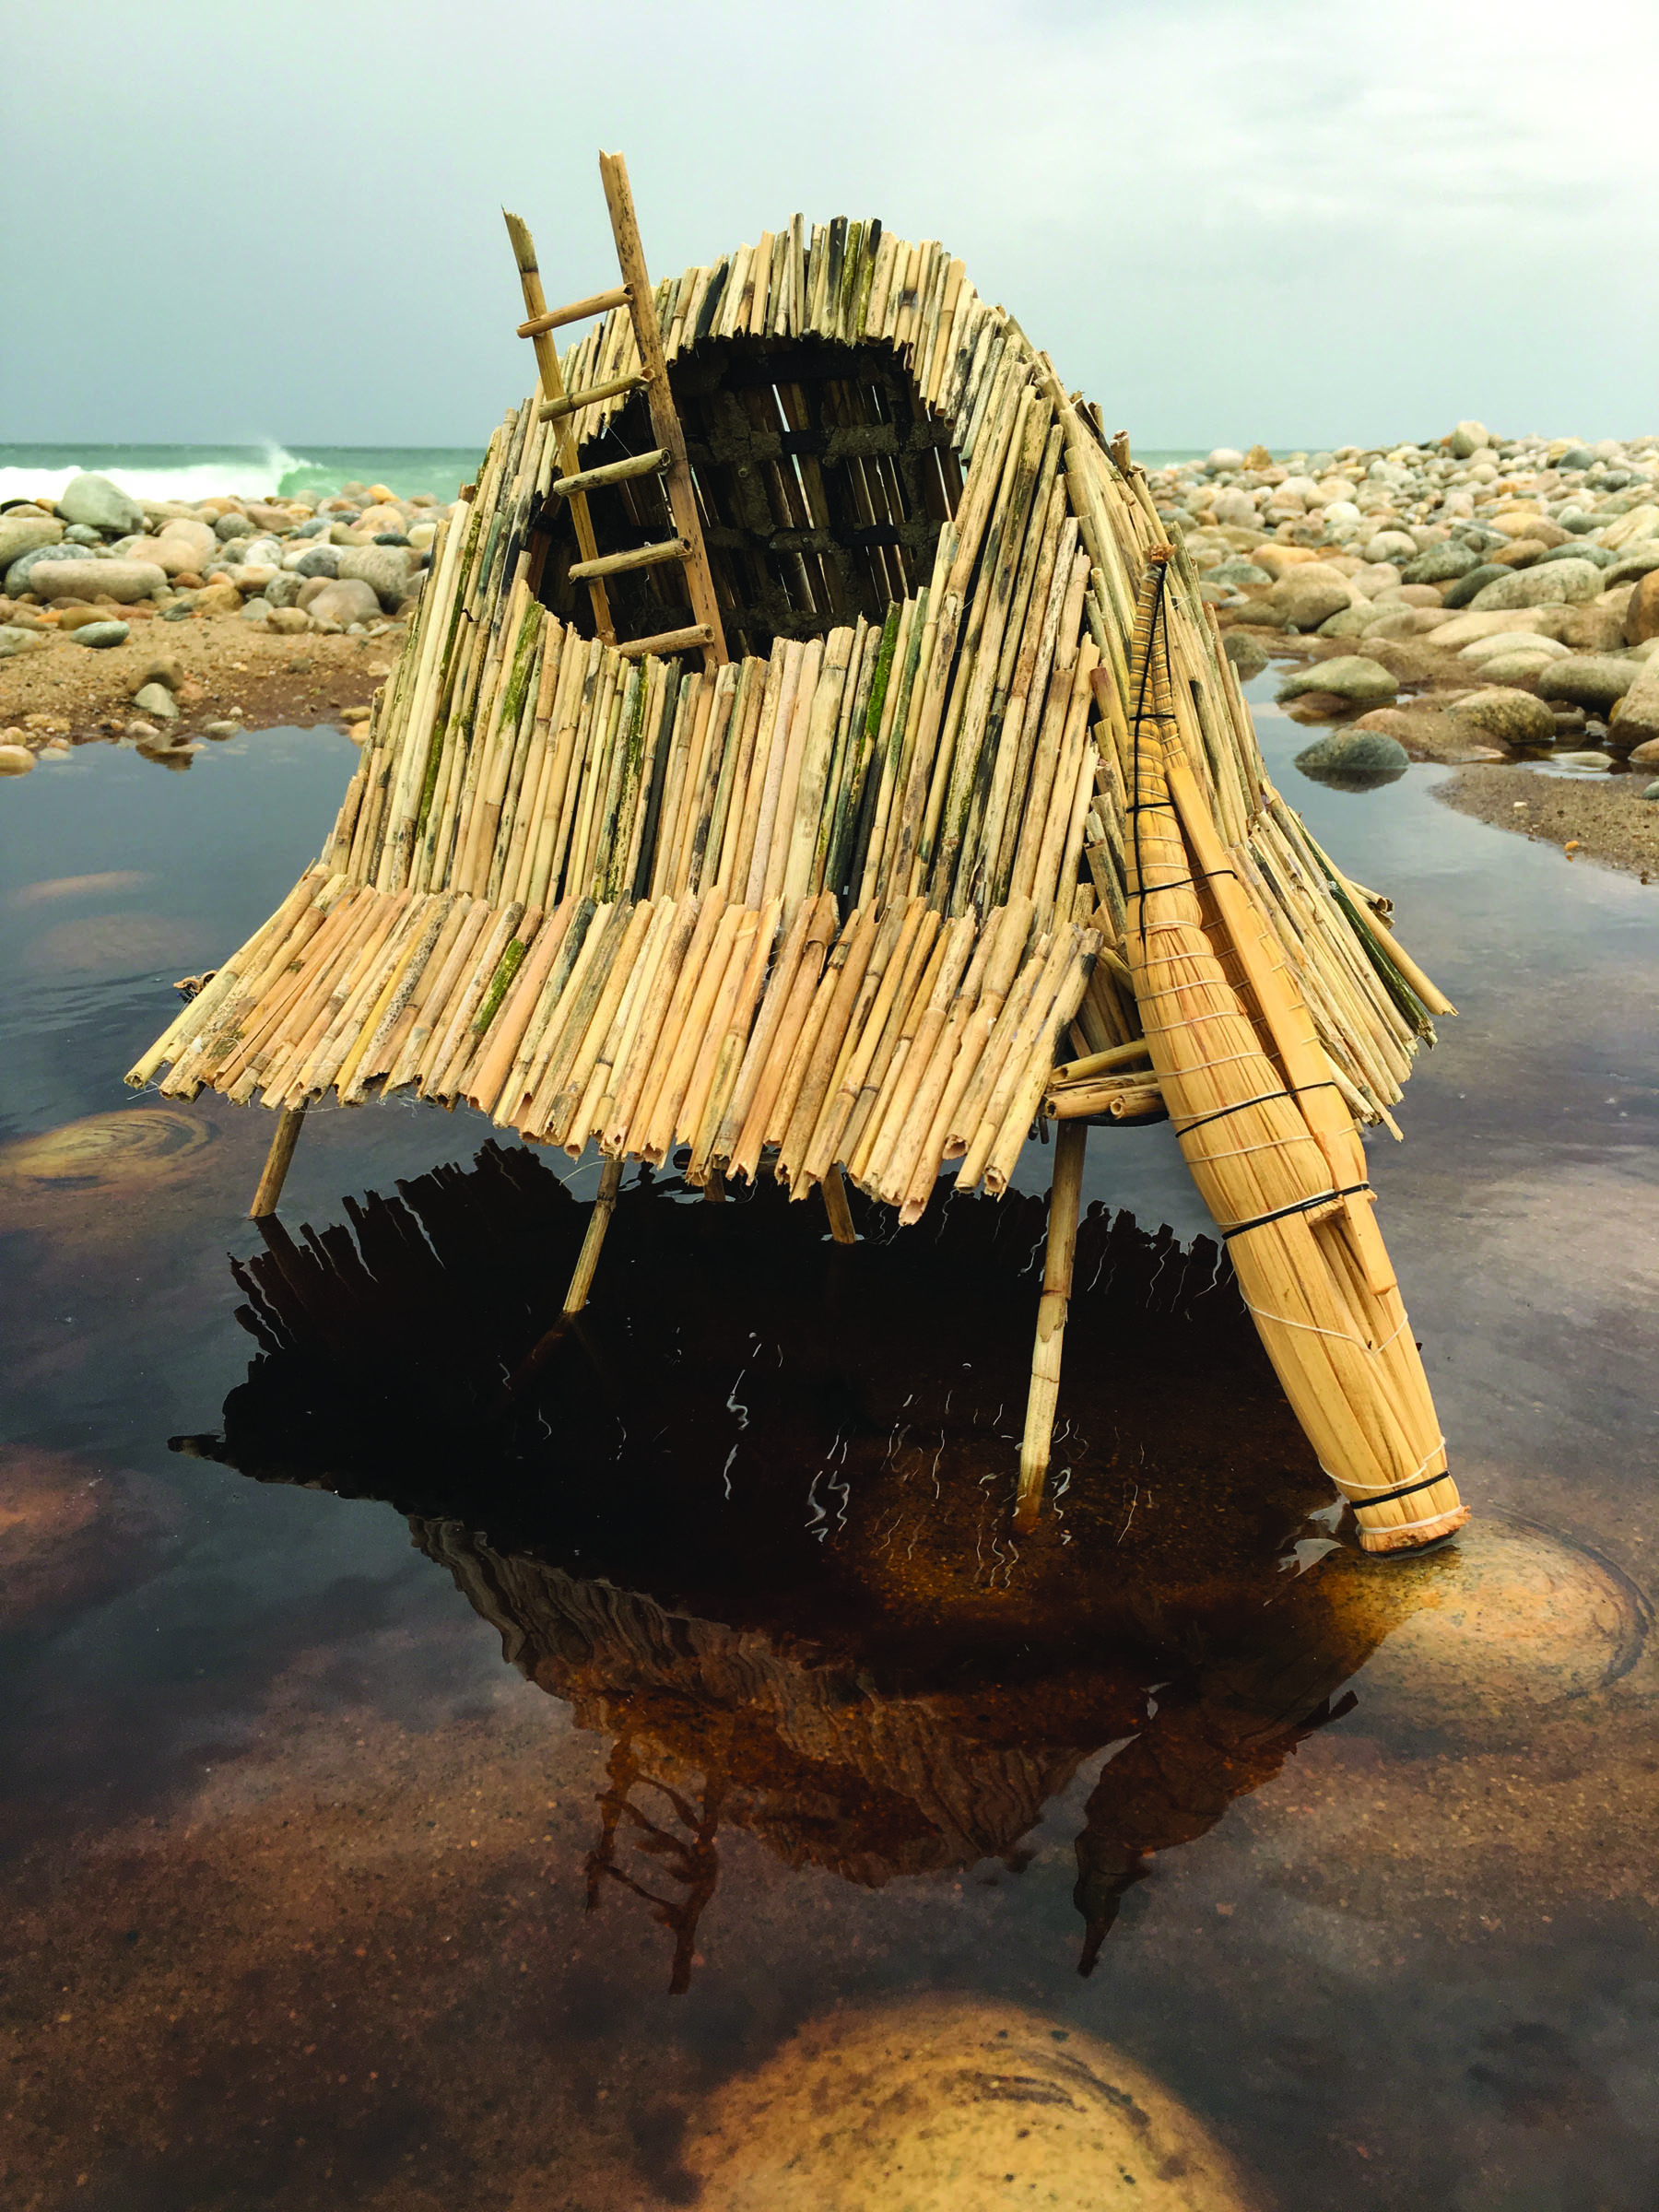 "Stilt House    phragmite reeds, lobster trap, miniature Peruvian reed boat model  14"" x 20"" x 10""  on location at Amsterdam Beach, Montauk, NY. June 2016  (Available as archival digital print, 16"" x 20"", edition of 50)"